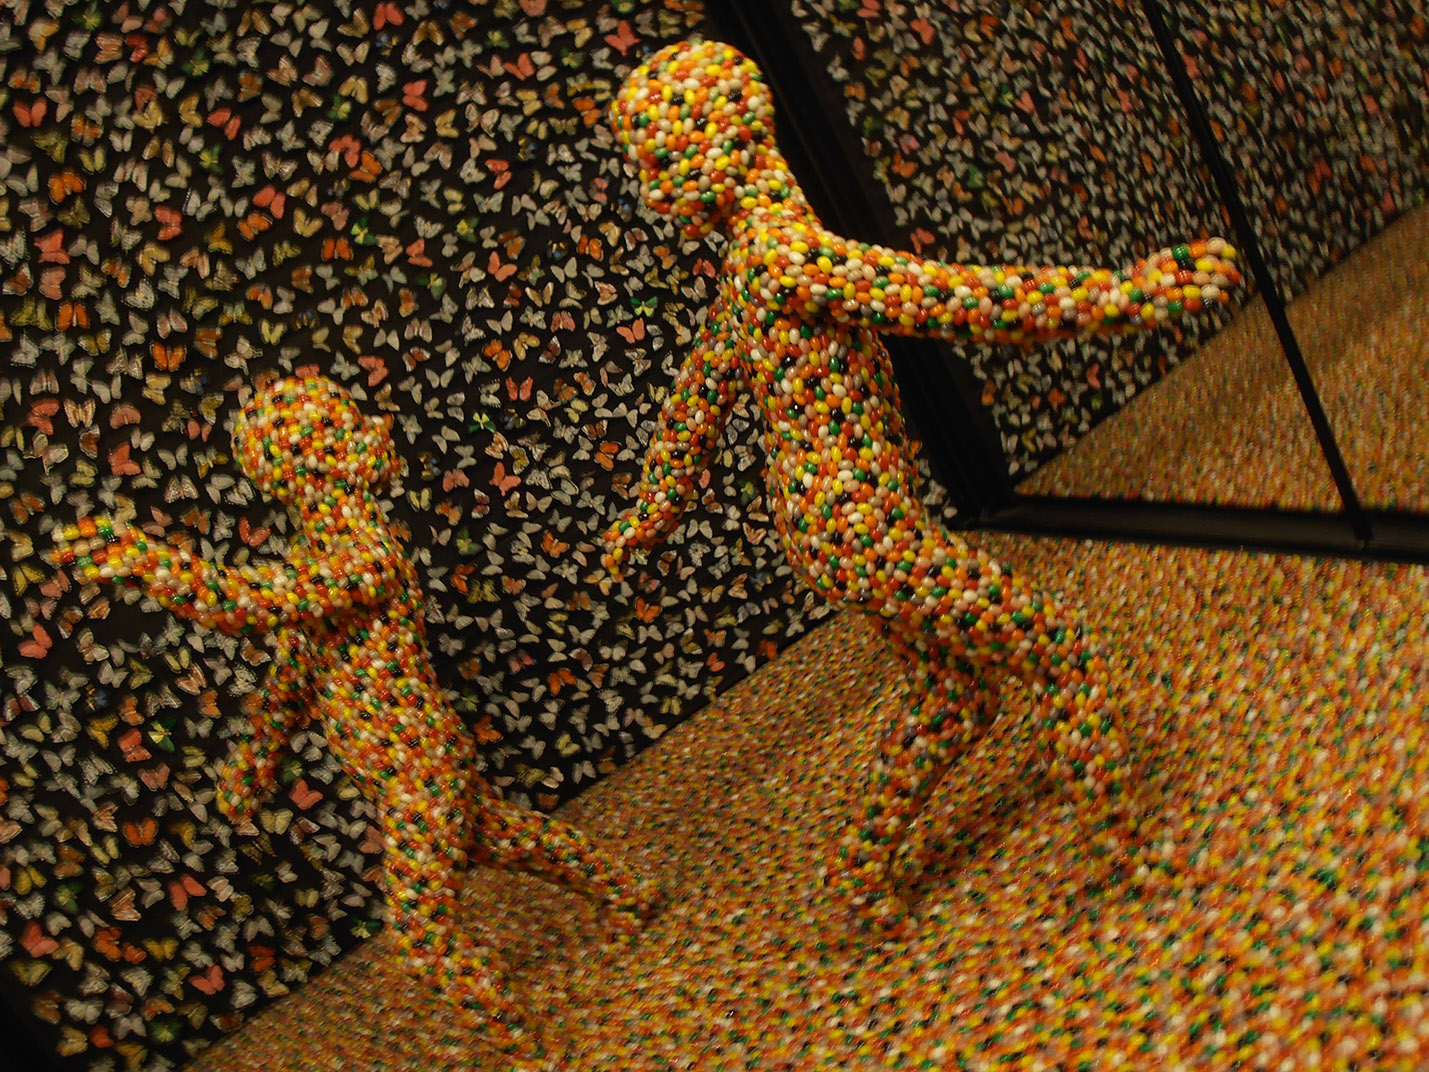 Mirrors and jelly beans, Art Exhibit, Liberty Museum, Philadelphia, PA